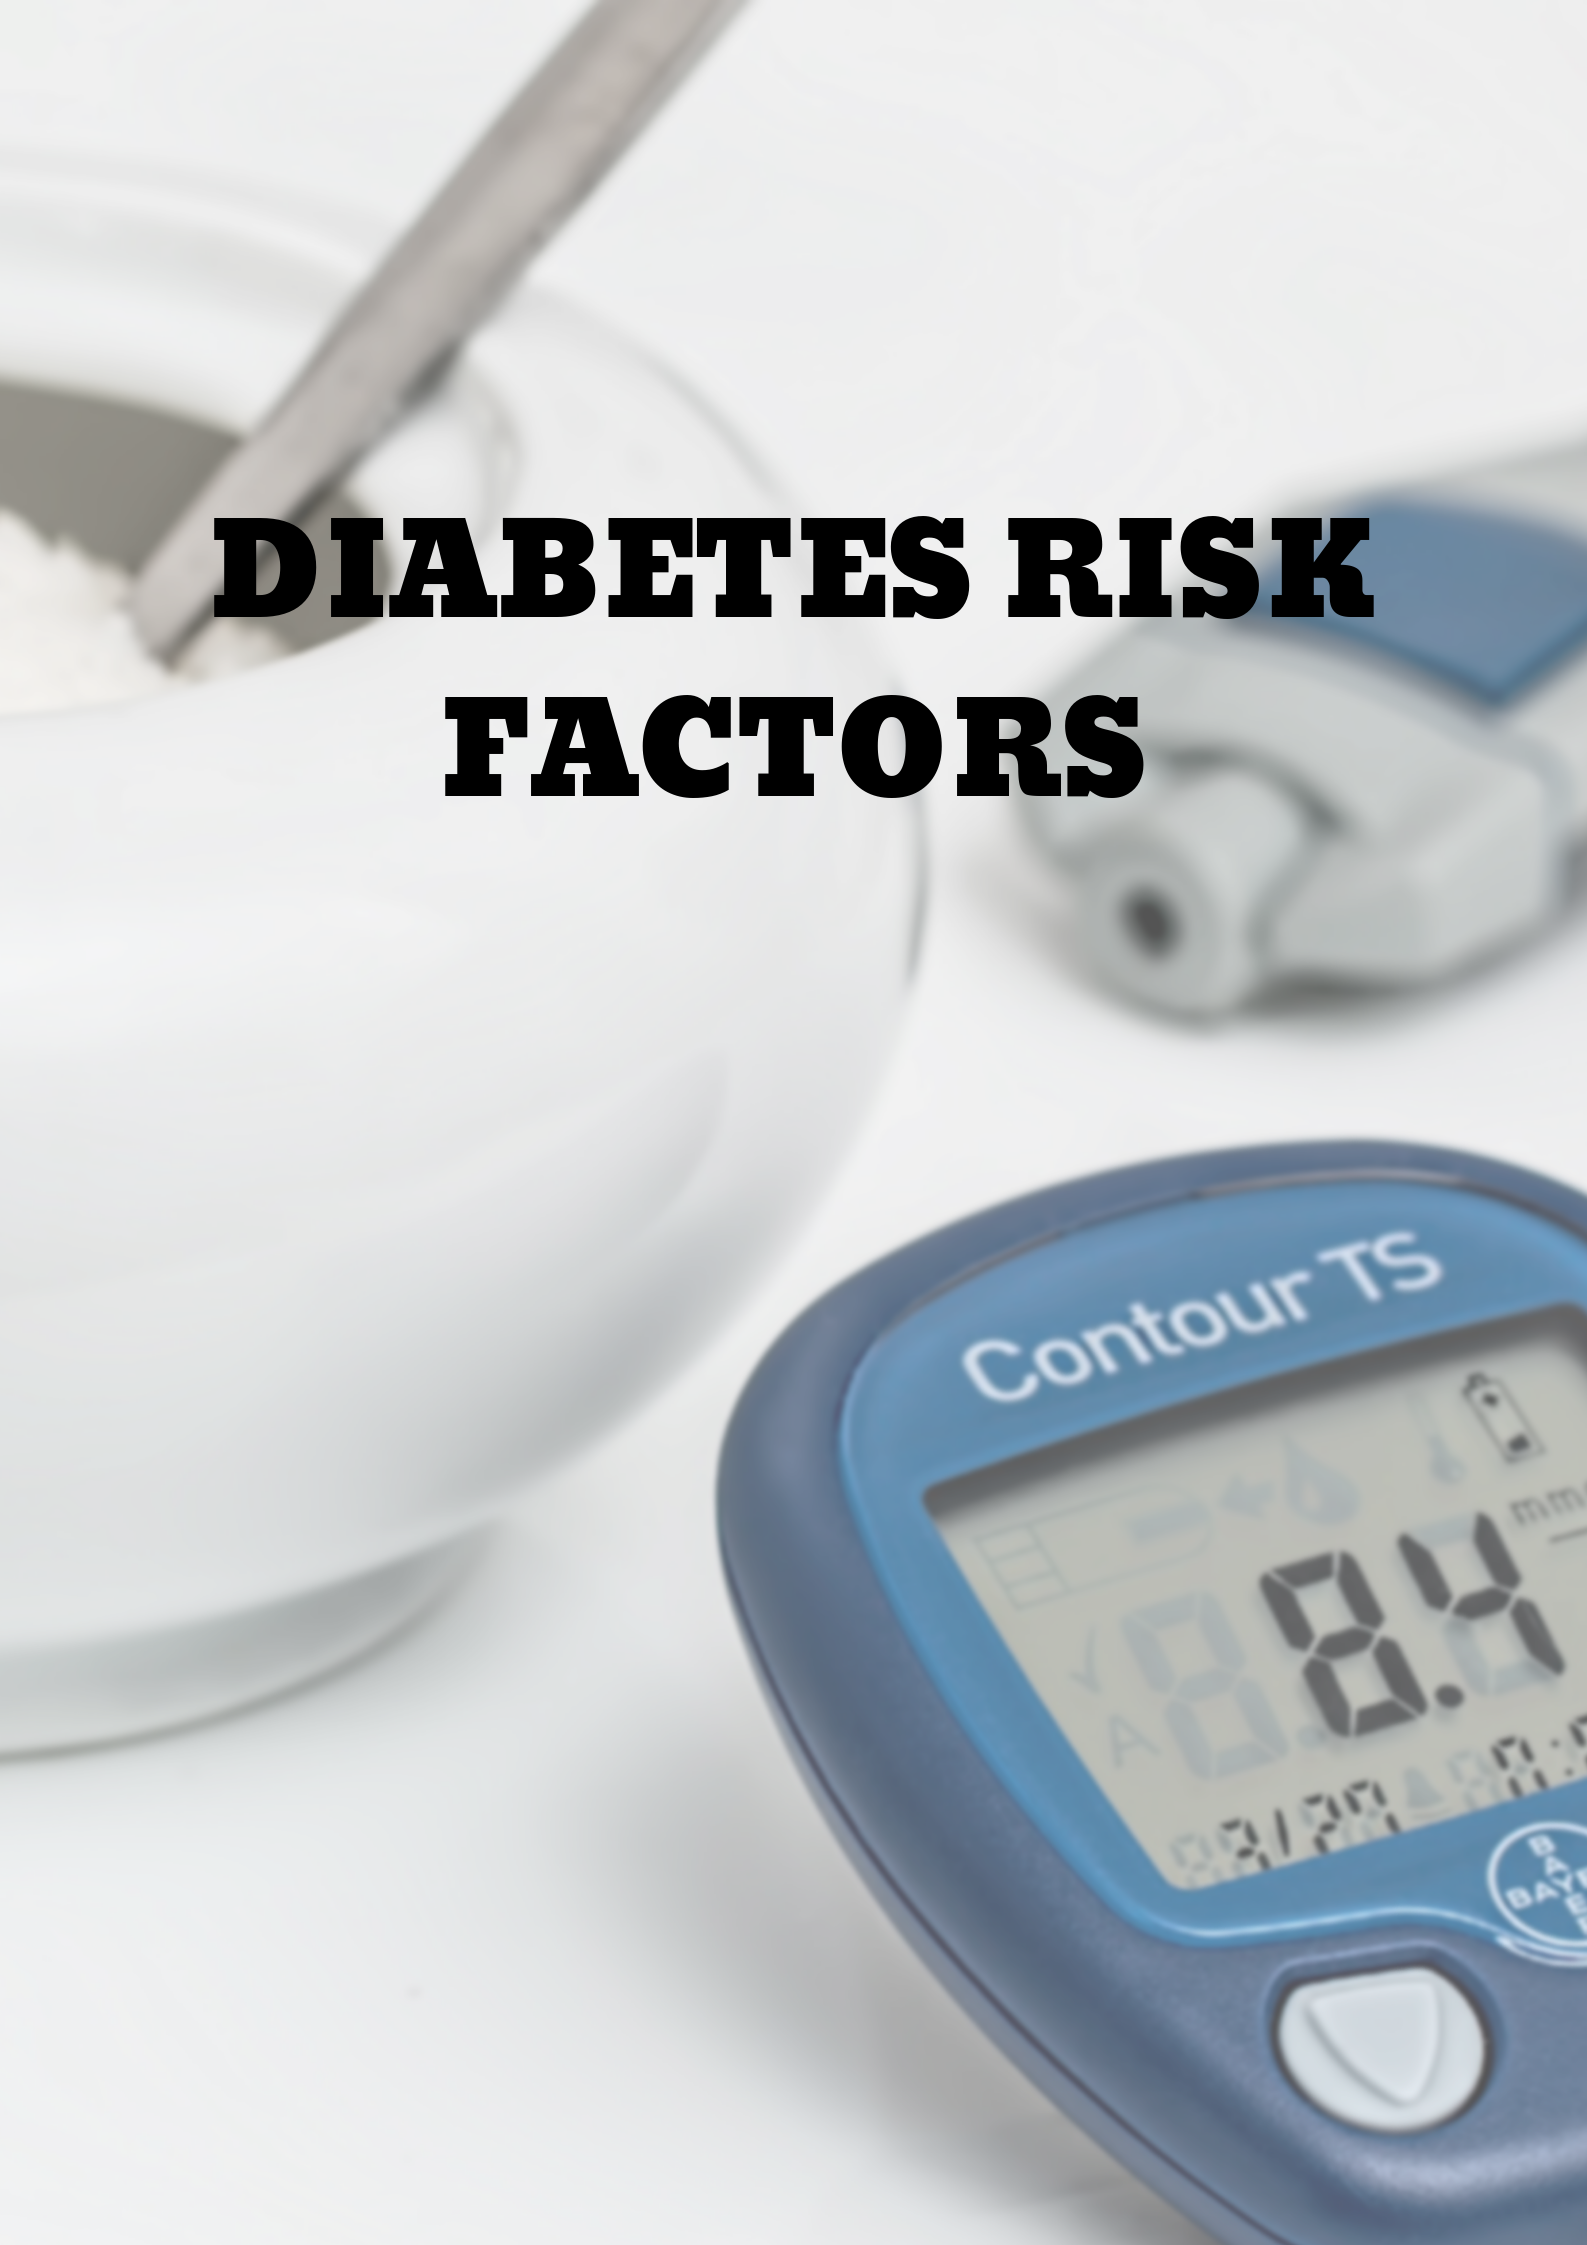 Diabetes Risk Factors Photo